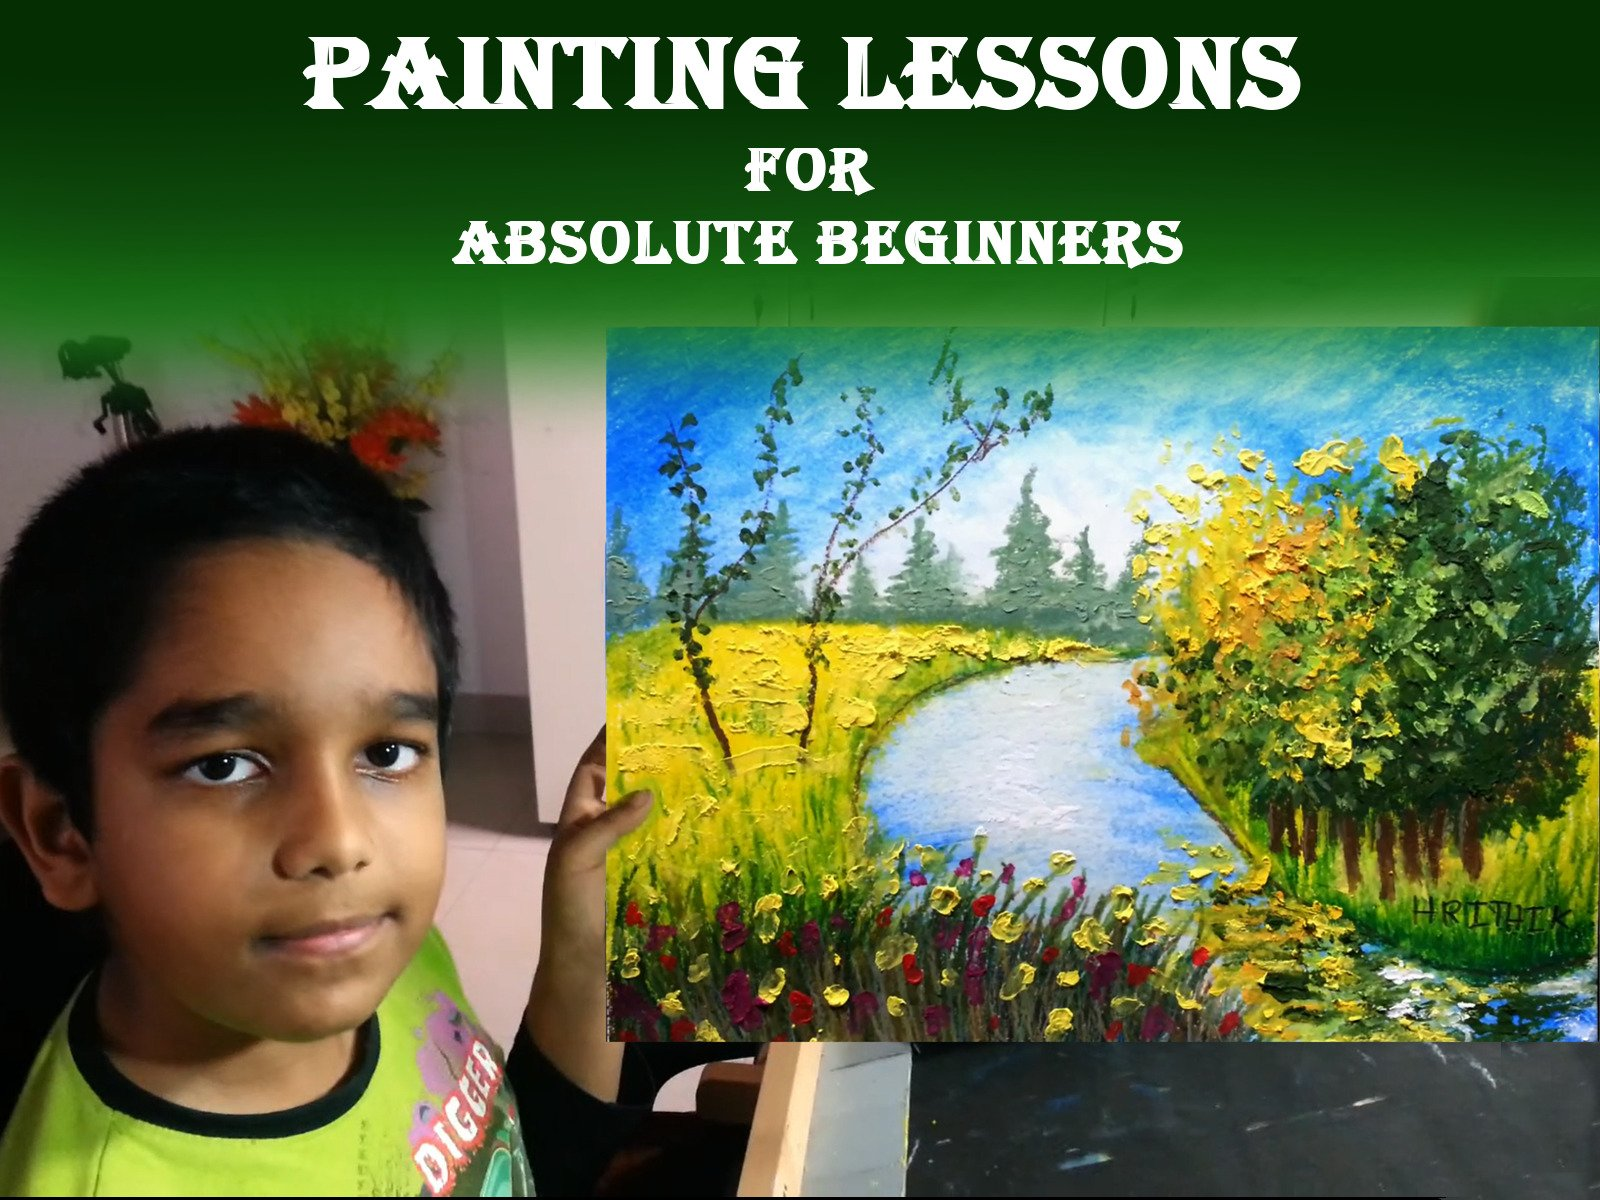 Painting Lessons For Absolute Beginners on Amazon Prime Video UK